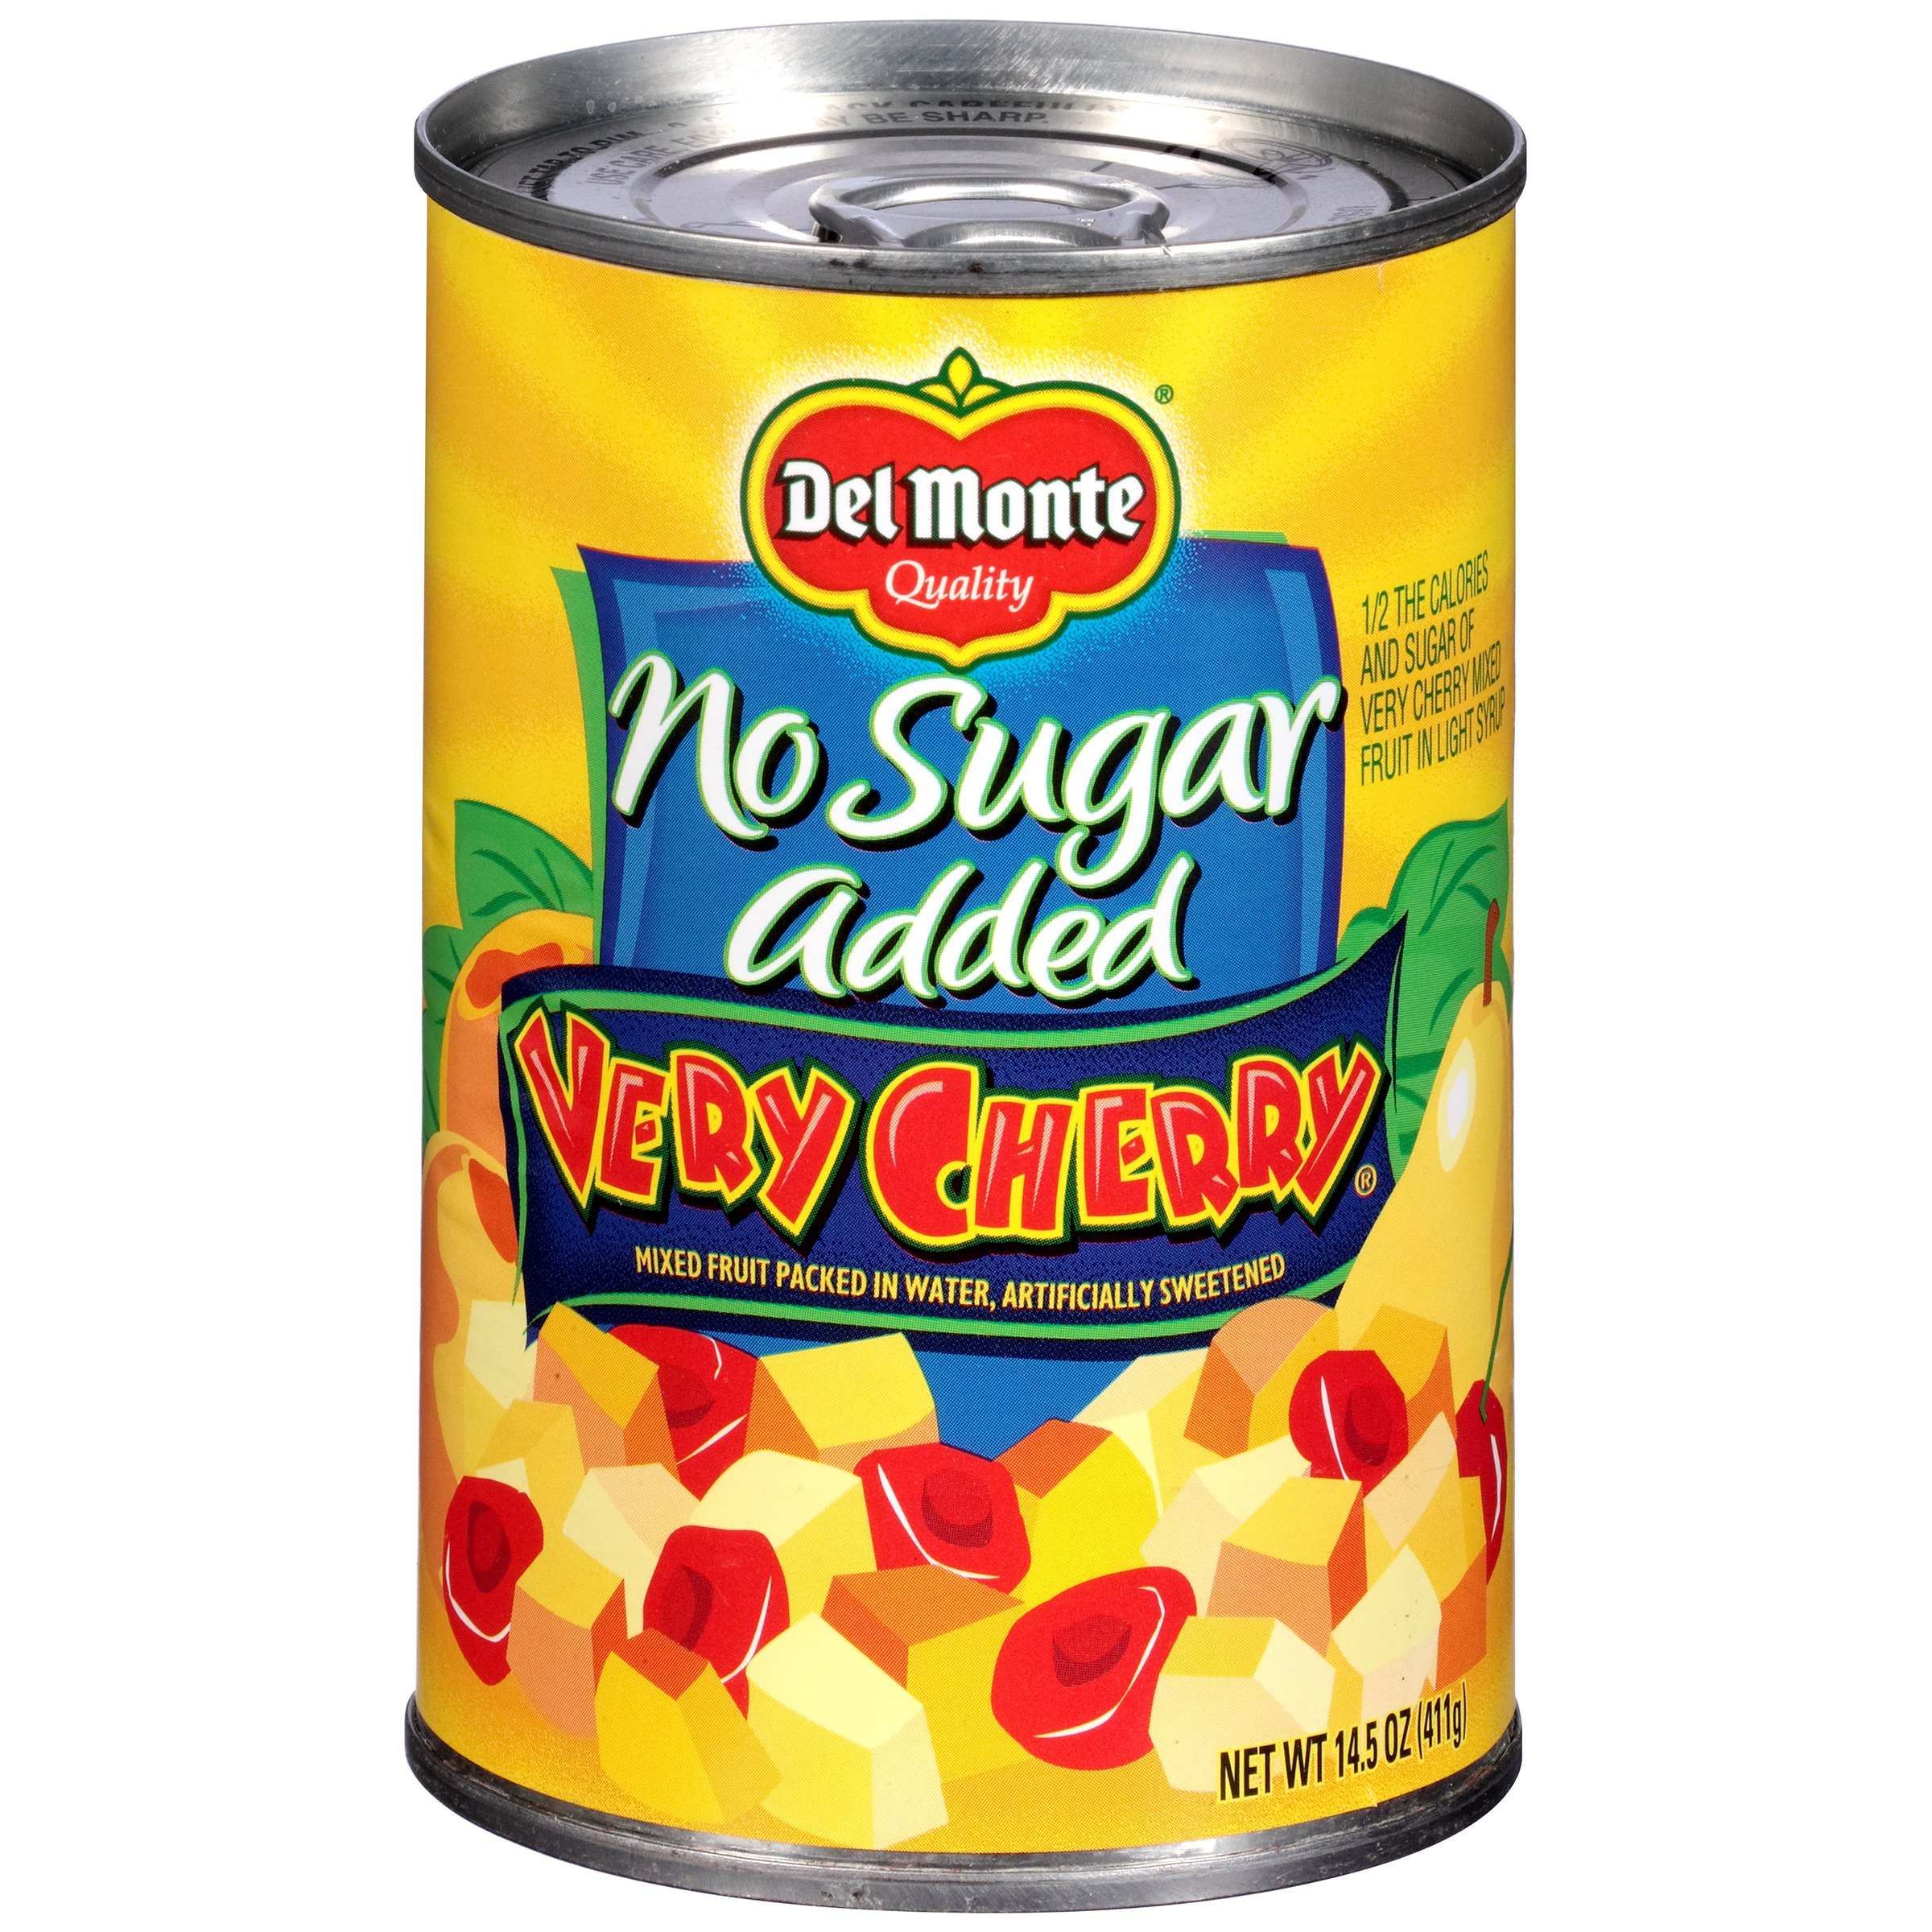 Del Monte No Sugar Added Very Cherry Mixed Fruit, 14.5 oz by Del Monte Foods